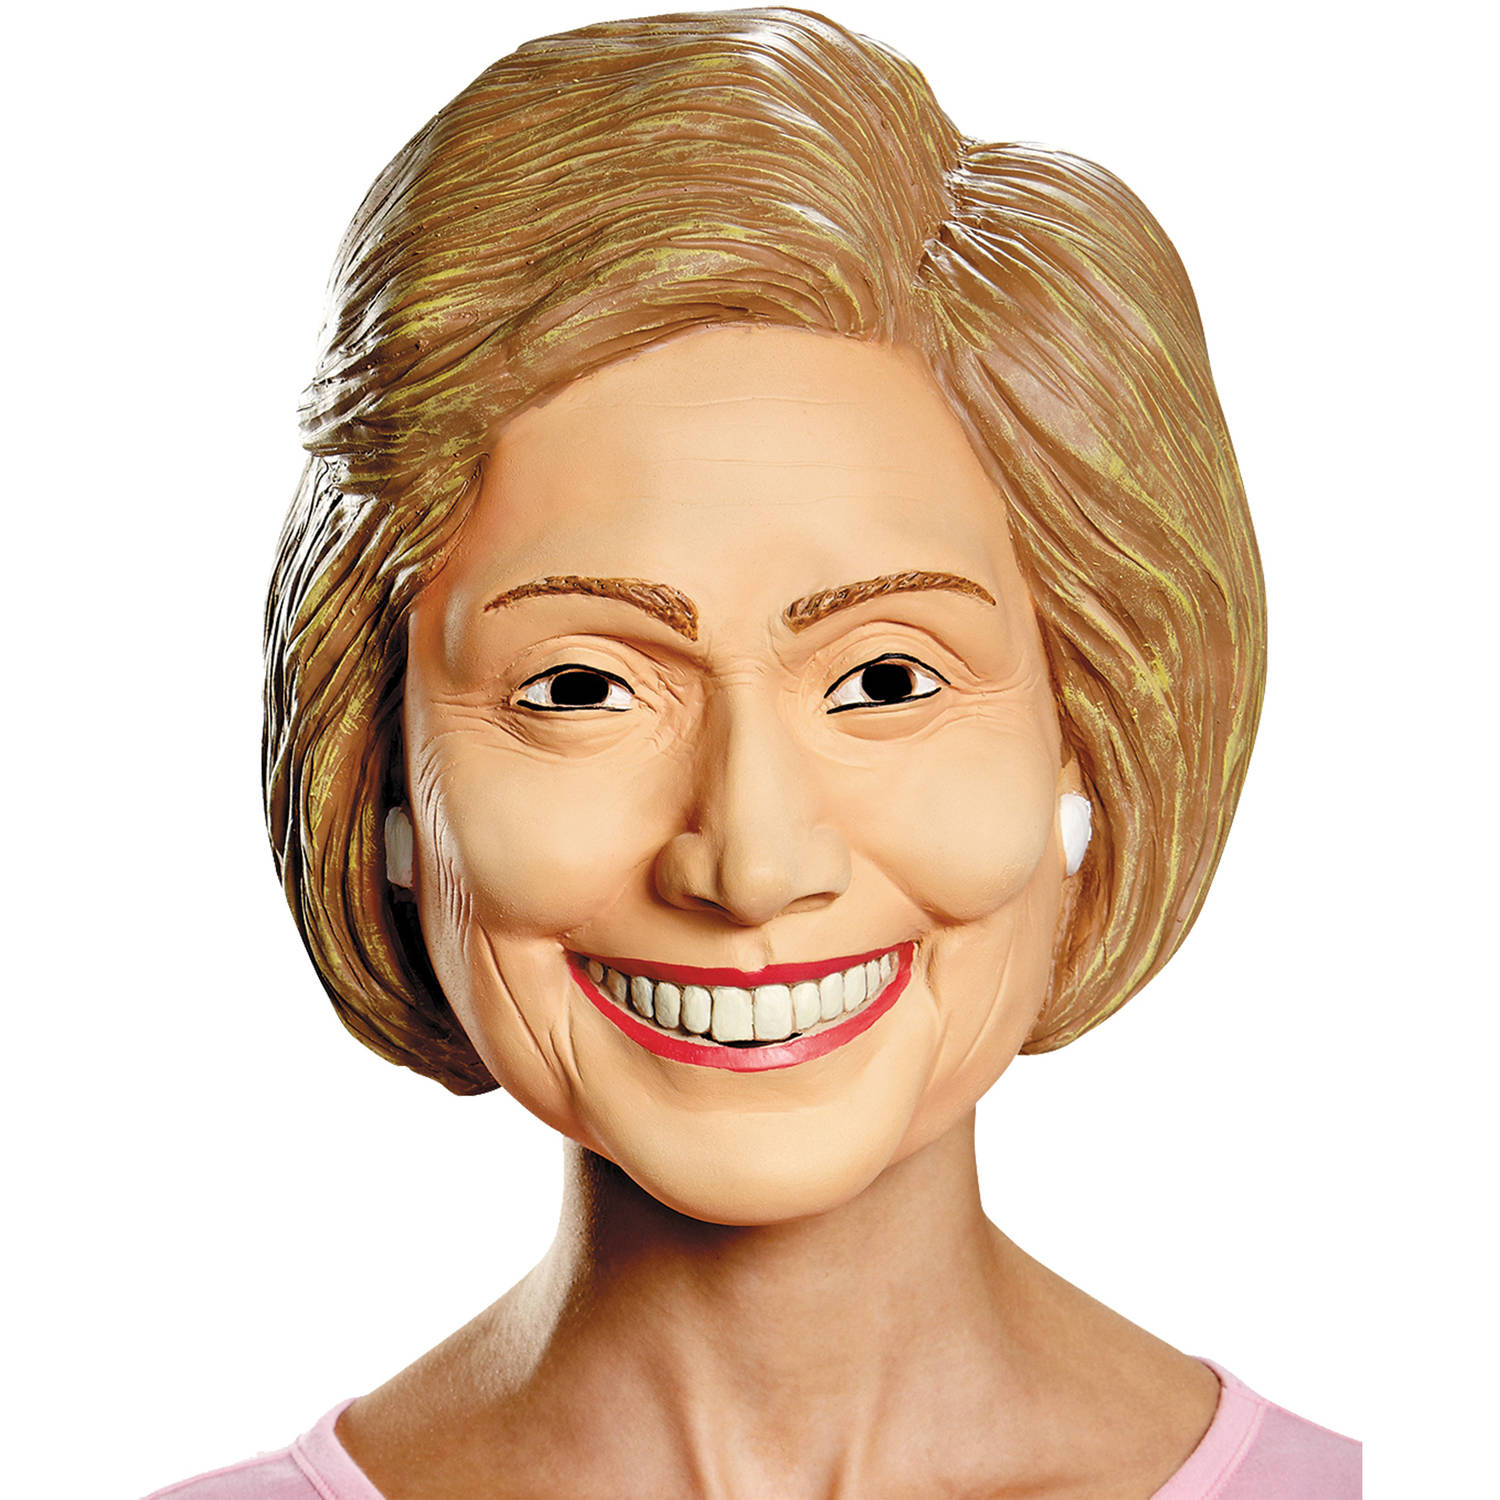 Hillary Clinton the Democratic Presidential Candidate Deluxe Mask Costume Accessory